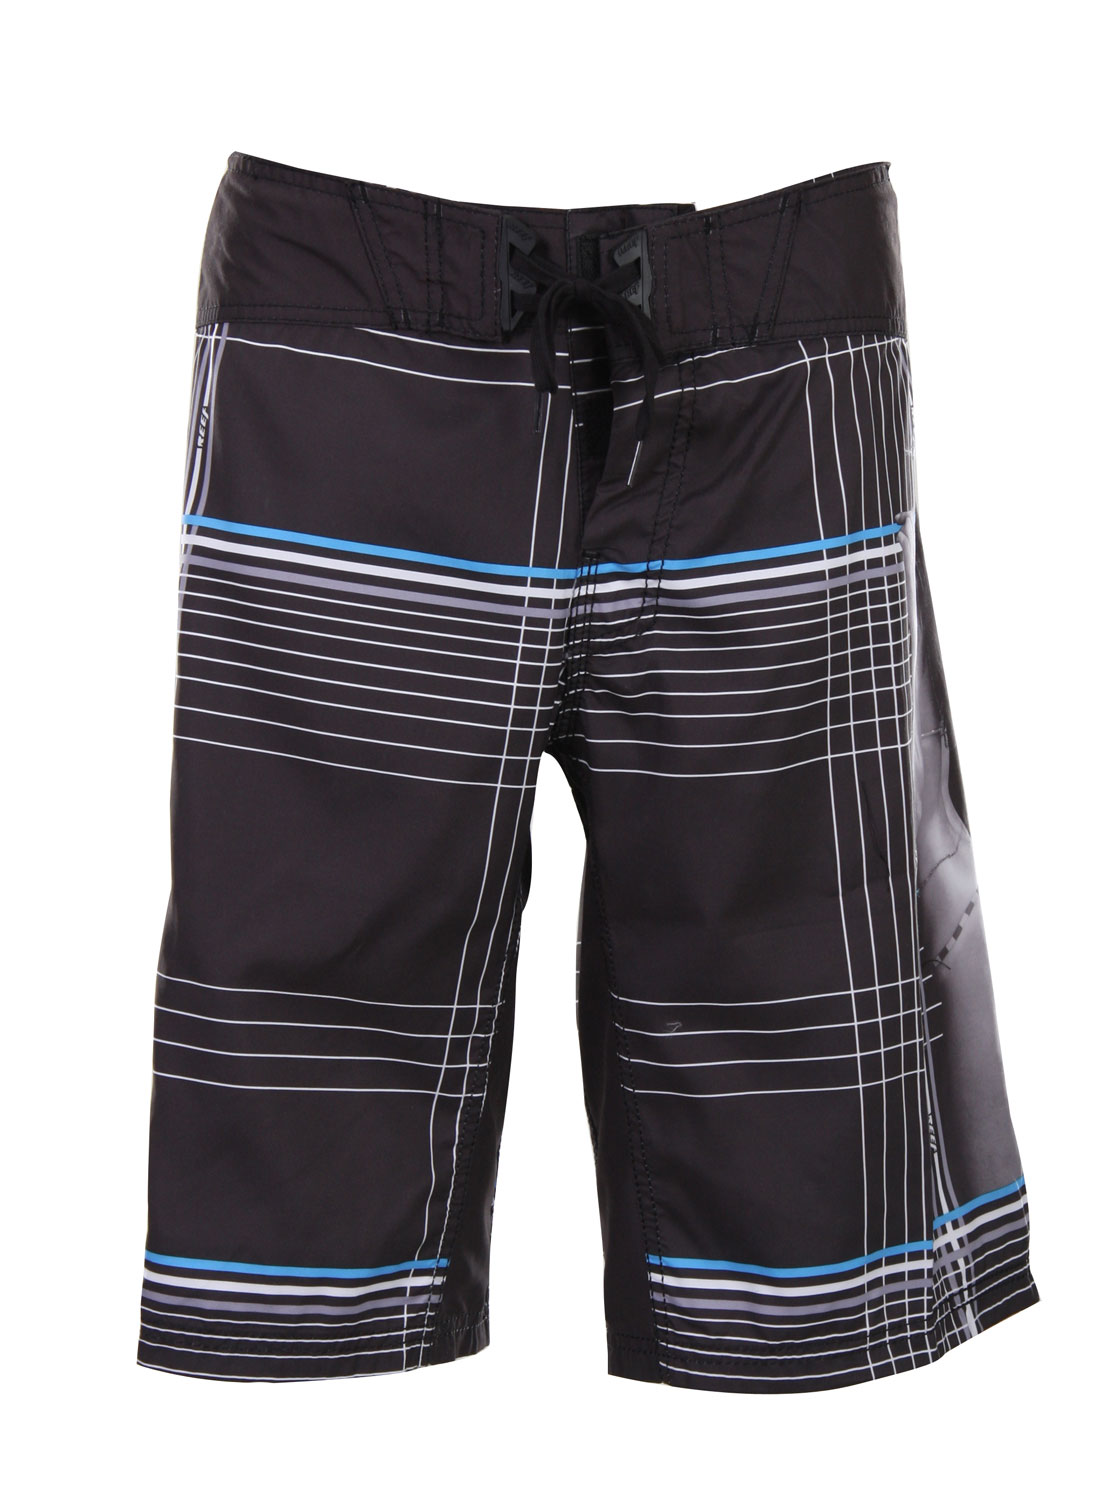 "Surf Get with the summer theme and rock these great pair of shorts. The Reef Bird On A Wire Boardshorts are perfect for summer. Featuring a plaid design, these shorts are ideal for daytime casual wear. Made with 100% polyester, these are super soft to the touch making it easier to get through the day with comfort and ease. Head to the beach and soak in all the sun.Key Features of the Reef Bird On A Wire Boardshorts: 100% Polyester Allover Plaid Print with Miss Reef Right Leg Logo Applique Back Right Welt Pocket Custom Logo Eyelets 22"" Outseam - $41.95"